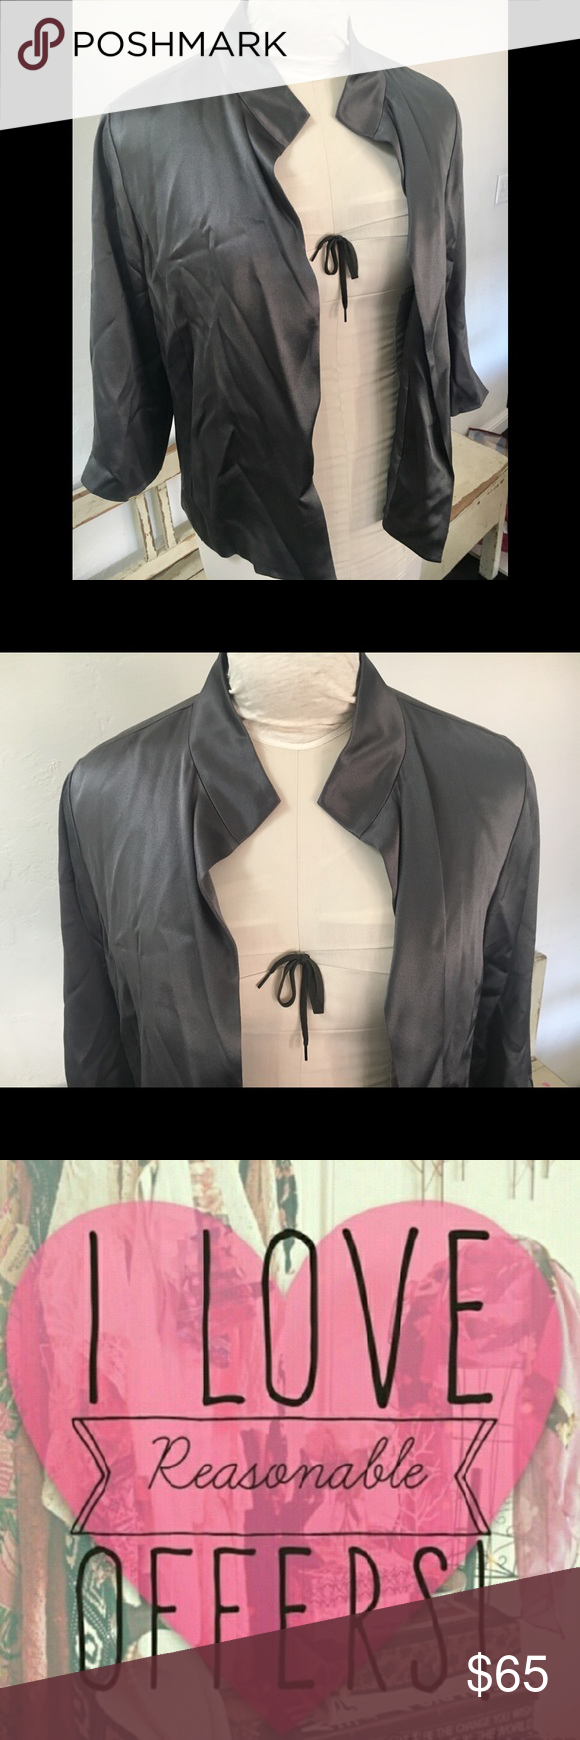 """EILEEN FISHER 100% SILK JACKET  SZ S GRAY LINED PRE OWNED, gently worn and in excellent condition. Eileen Fisher silk jacket. 3/4 sleeves open front , slots in sleeves, 100% silk , color is smokey gray. Jacket is lined. NO STAINS, rips or odors. Smoke free home. SIZE SMALL. ARMPIT TO ARMPIT FLAT SIDE TO SIDE: 20 1/2"""" sleeve length from armpit to bottom: 12"""" Shoulder to shoulder at widest: 17"""" length from top of shoulder to bottom front: 23 1/4"""" back:  22"""" eileen fisher Jackets & Coats"""